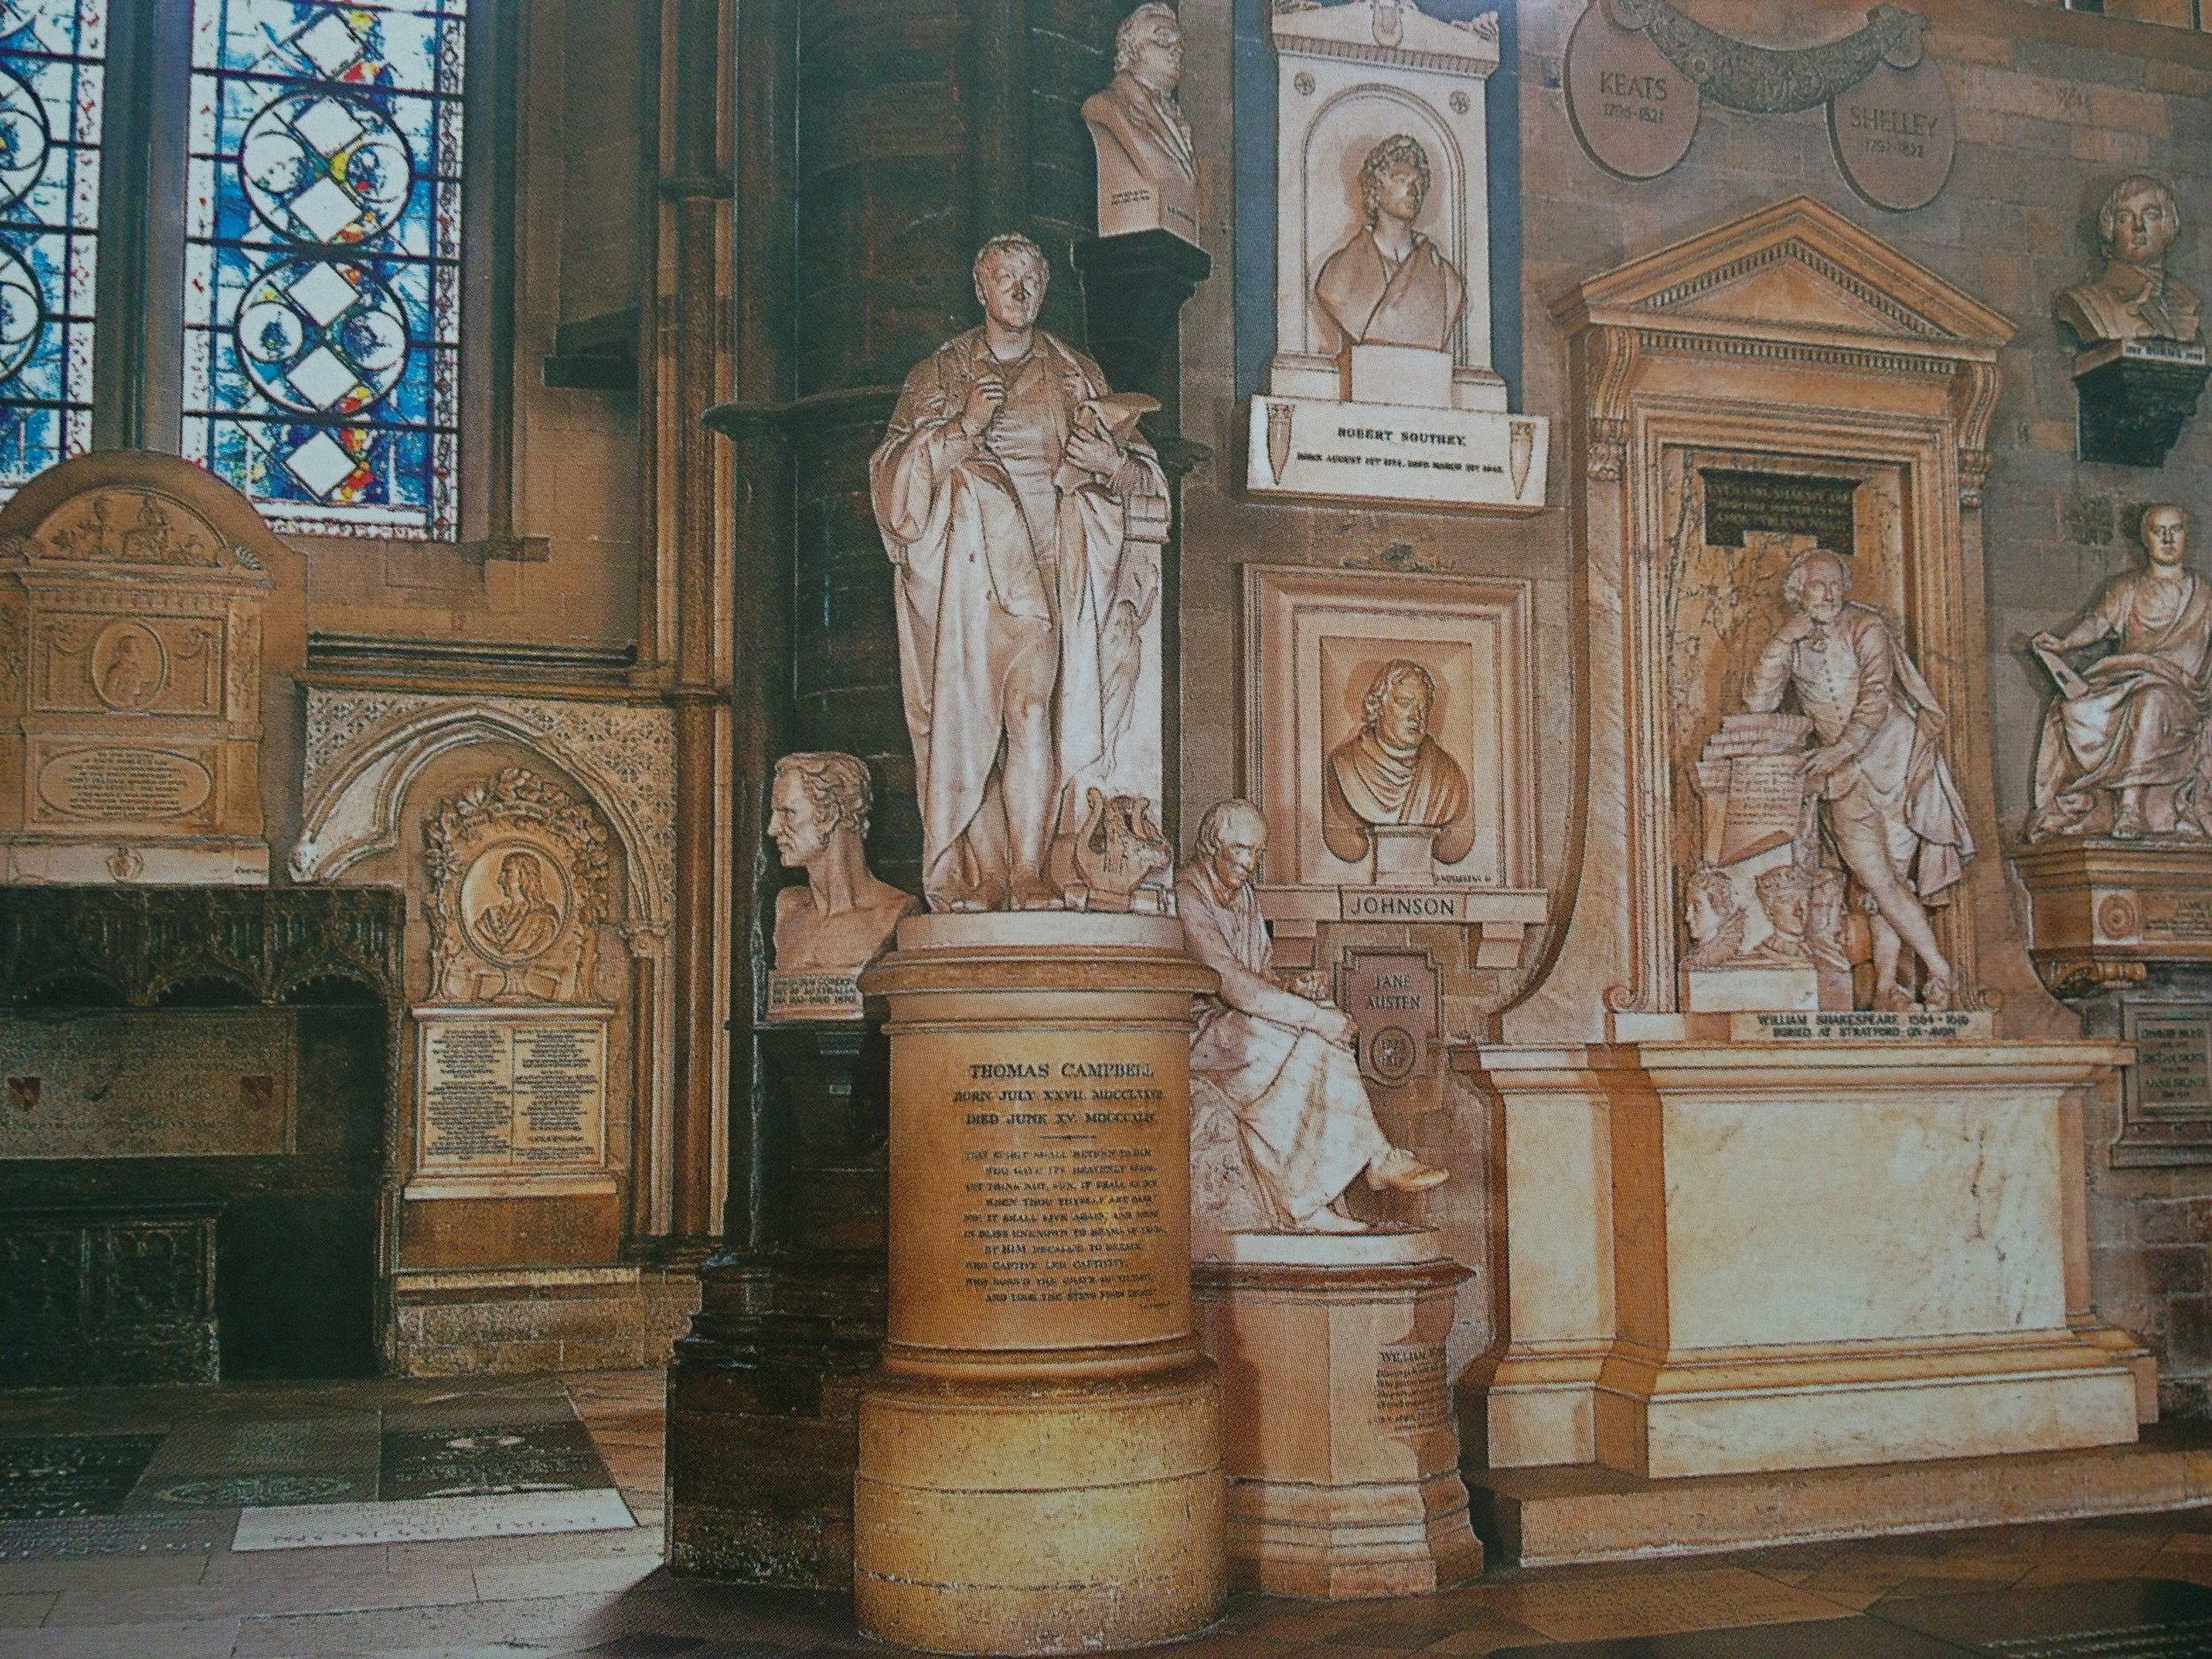 Photo Courtesy of  Westminster Abbey . /The Poet's Corner of Westminster Abbey. Jane's plaque is pictured, slightly hidden behind the statue of the seated man.